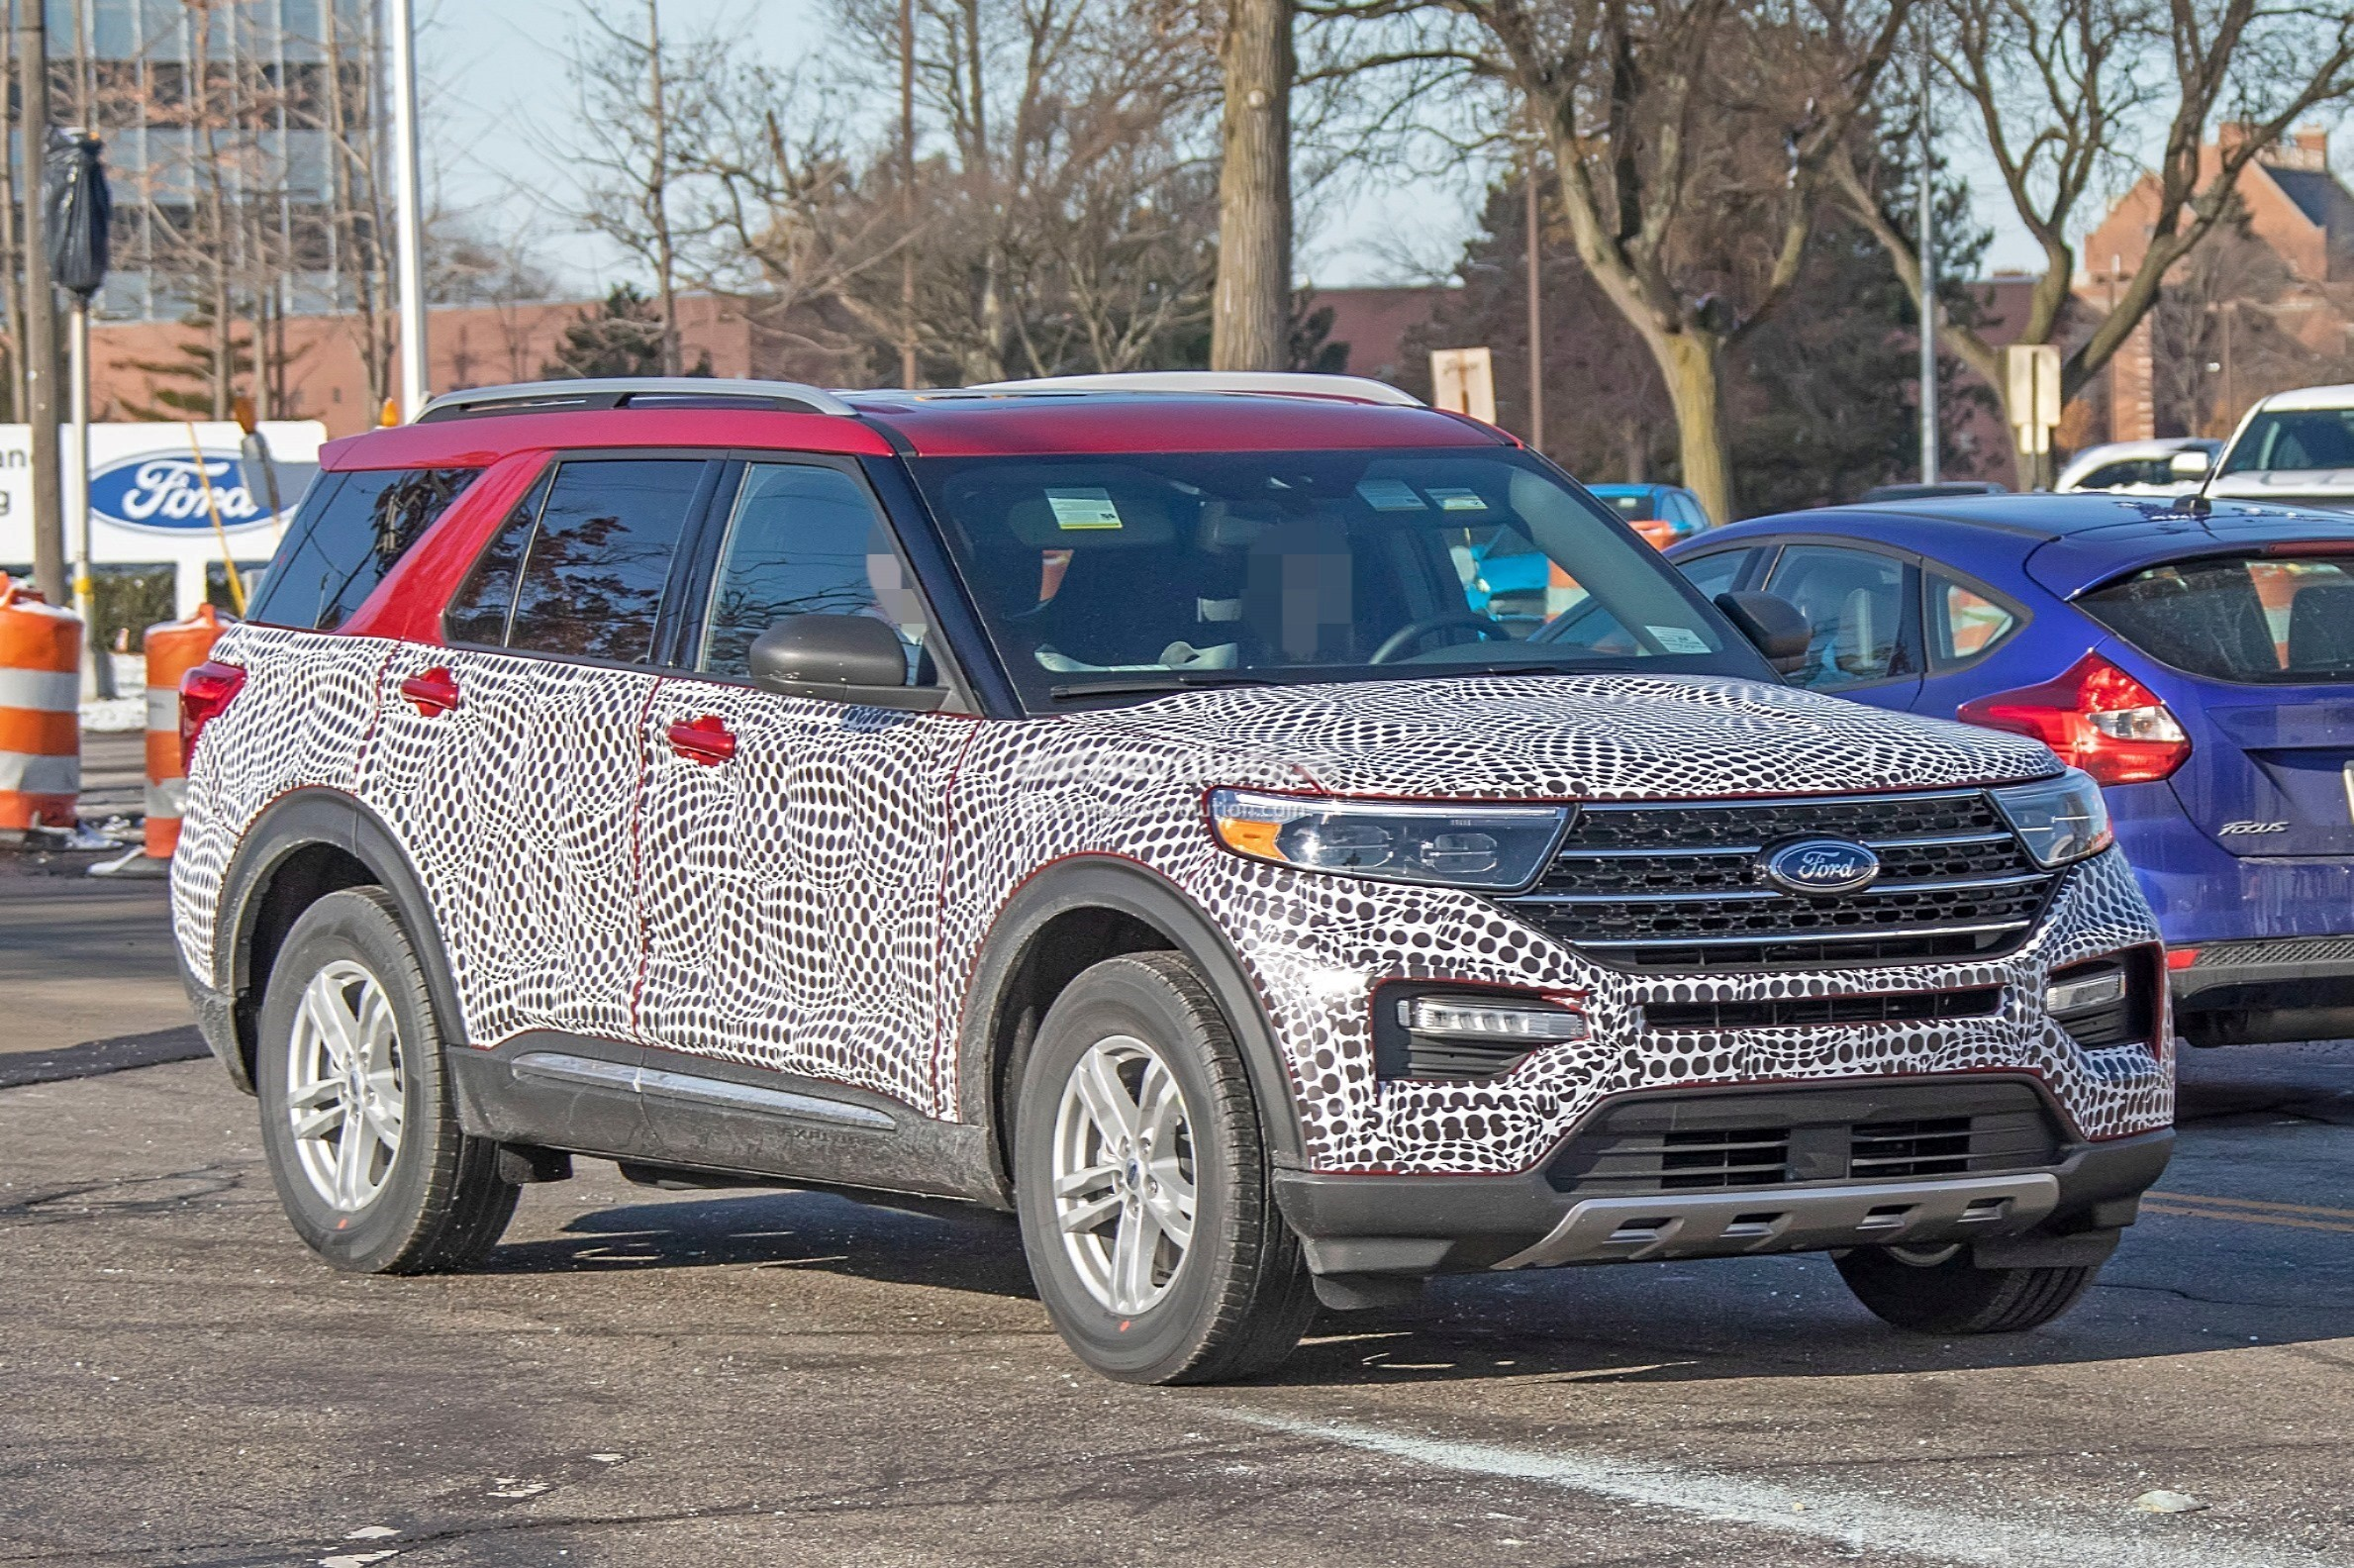 2020 Ford Explorer To Debut In January At Ford Field In Detroit - autoevolution